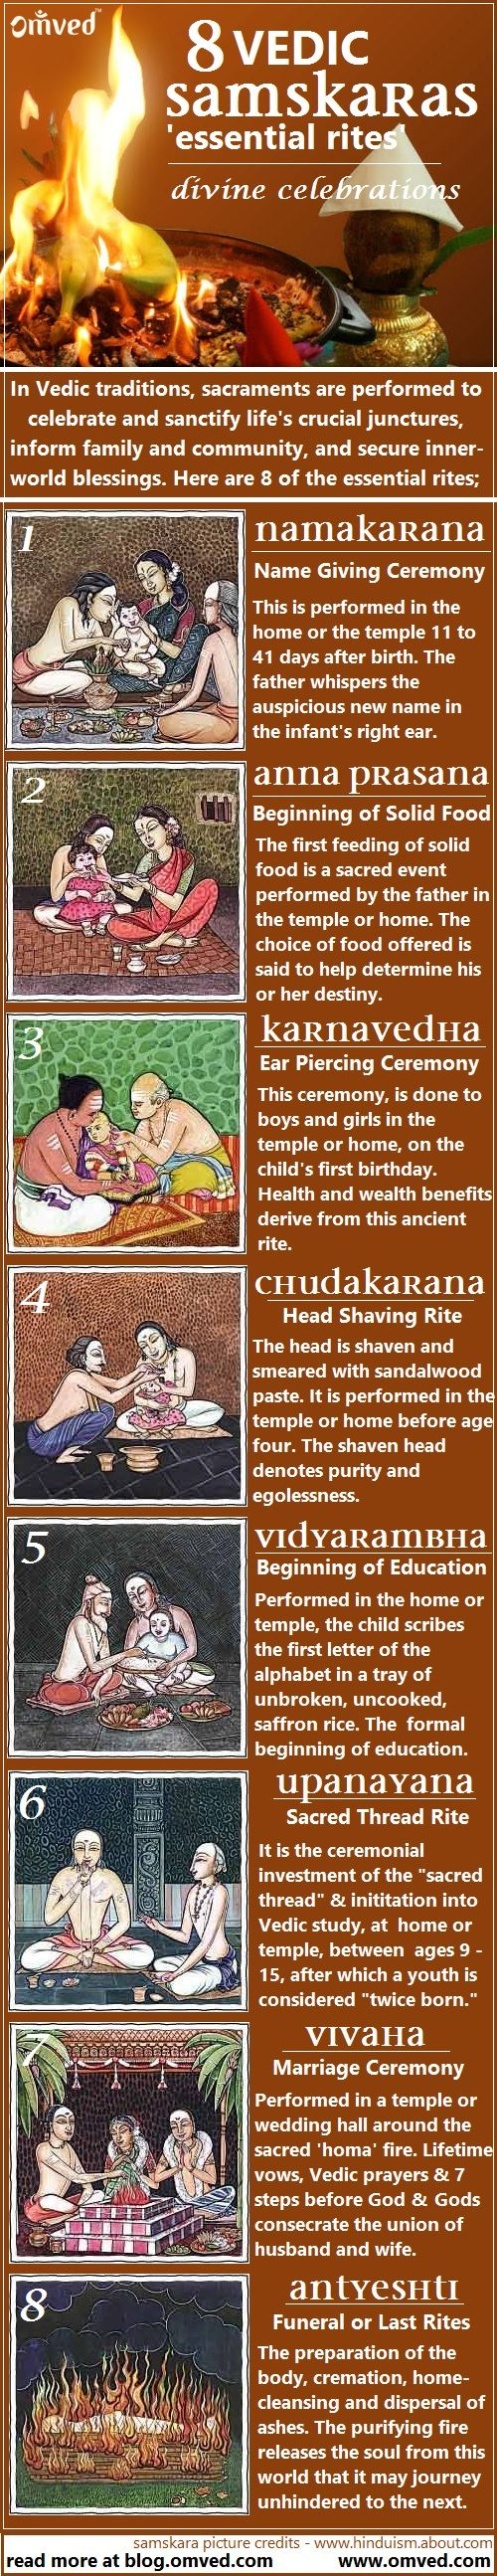 SAMSKARAS are Vedic rites of passage. Sacraments are performed to celebrate and sanctify life's crucial junctures, inform family and community, and secure inner-world blessings. Here are eight of the essential rites or 'samskaras' performed after birth till death.